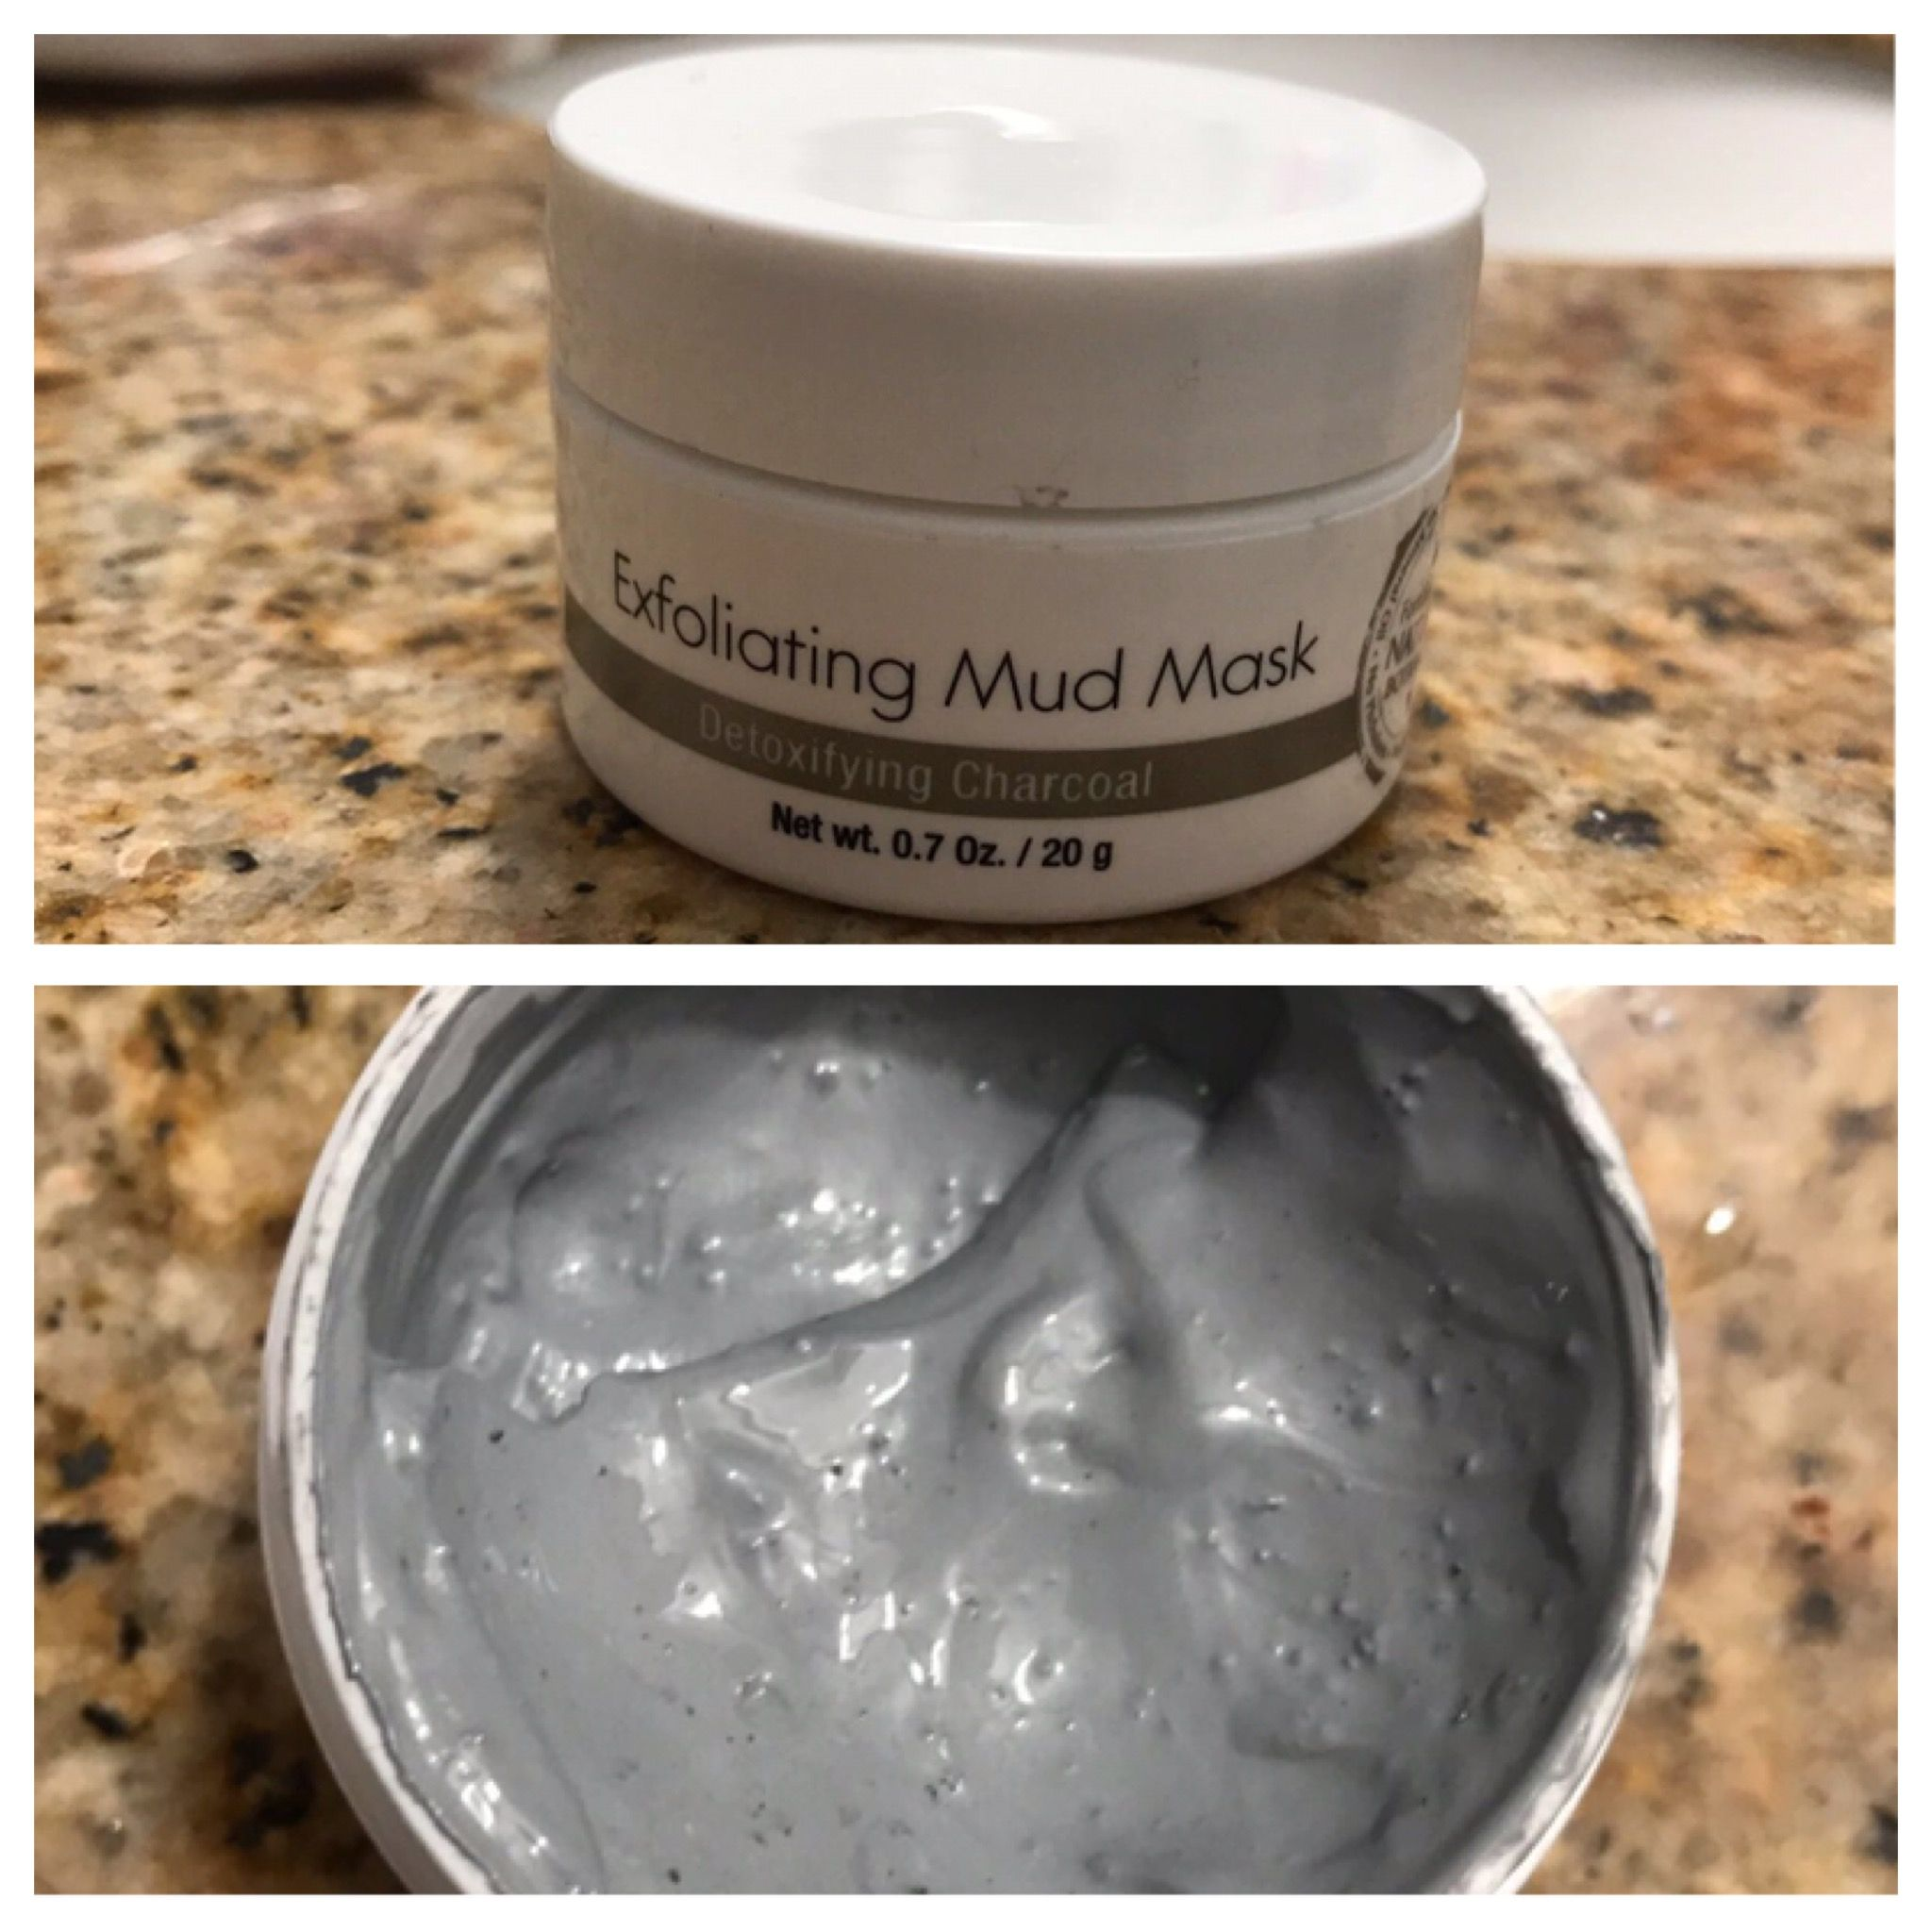 Tree Hut Skin Care Exfoliating Mud Mask With Detoxifying: Tree Hut Skin Care Exfoliating Mud Mask With Detoxifying